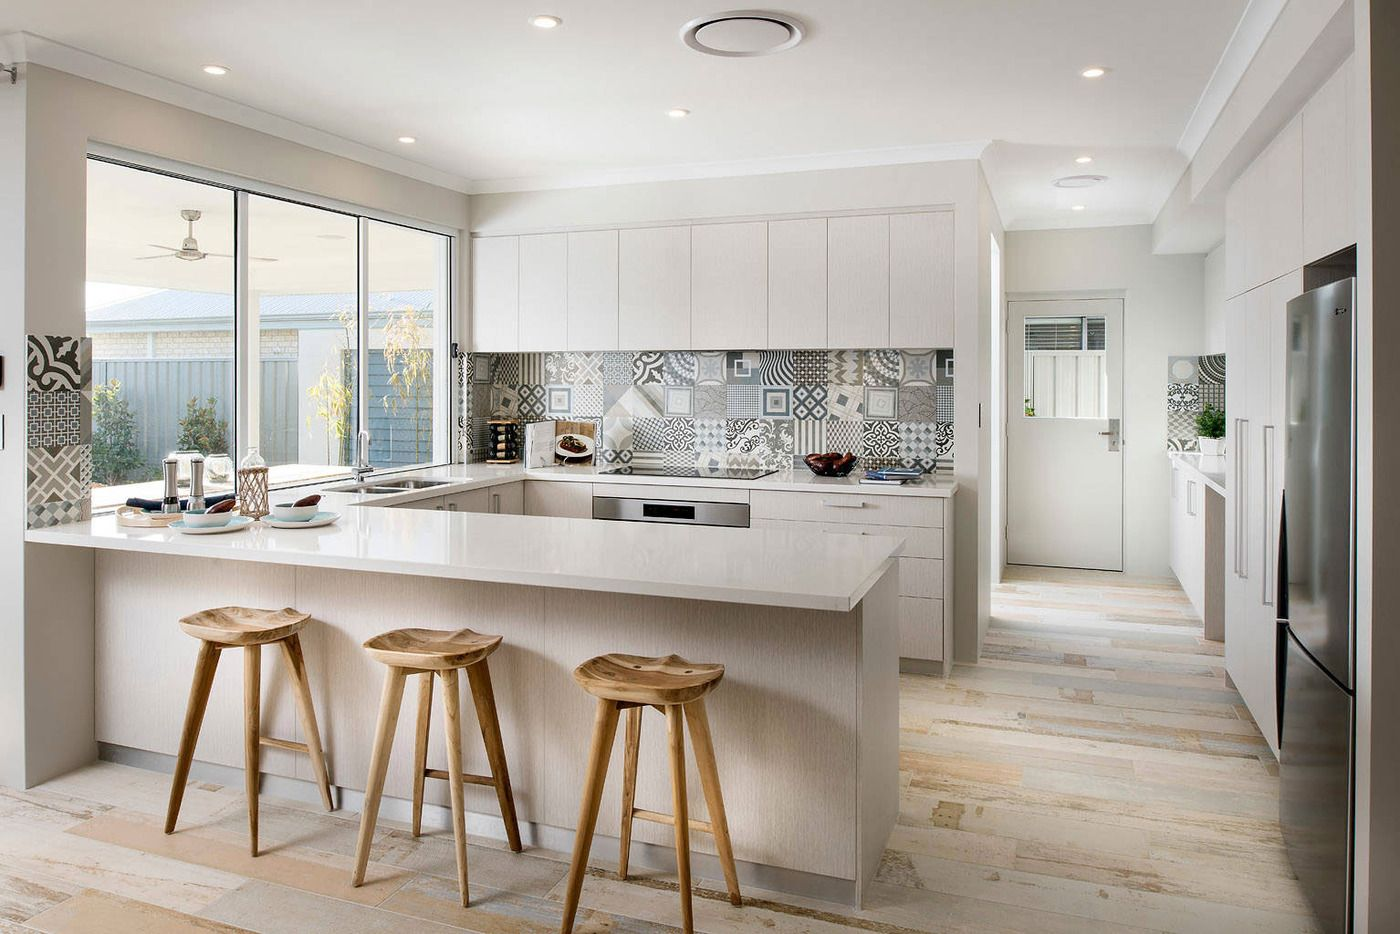 1155e-open-space-kitchen-top-resolution